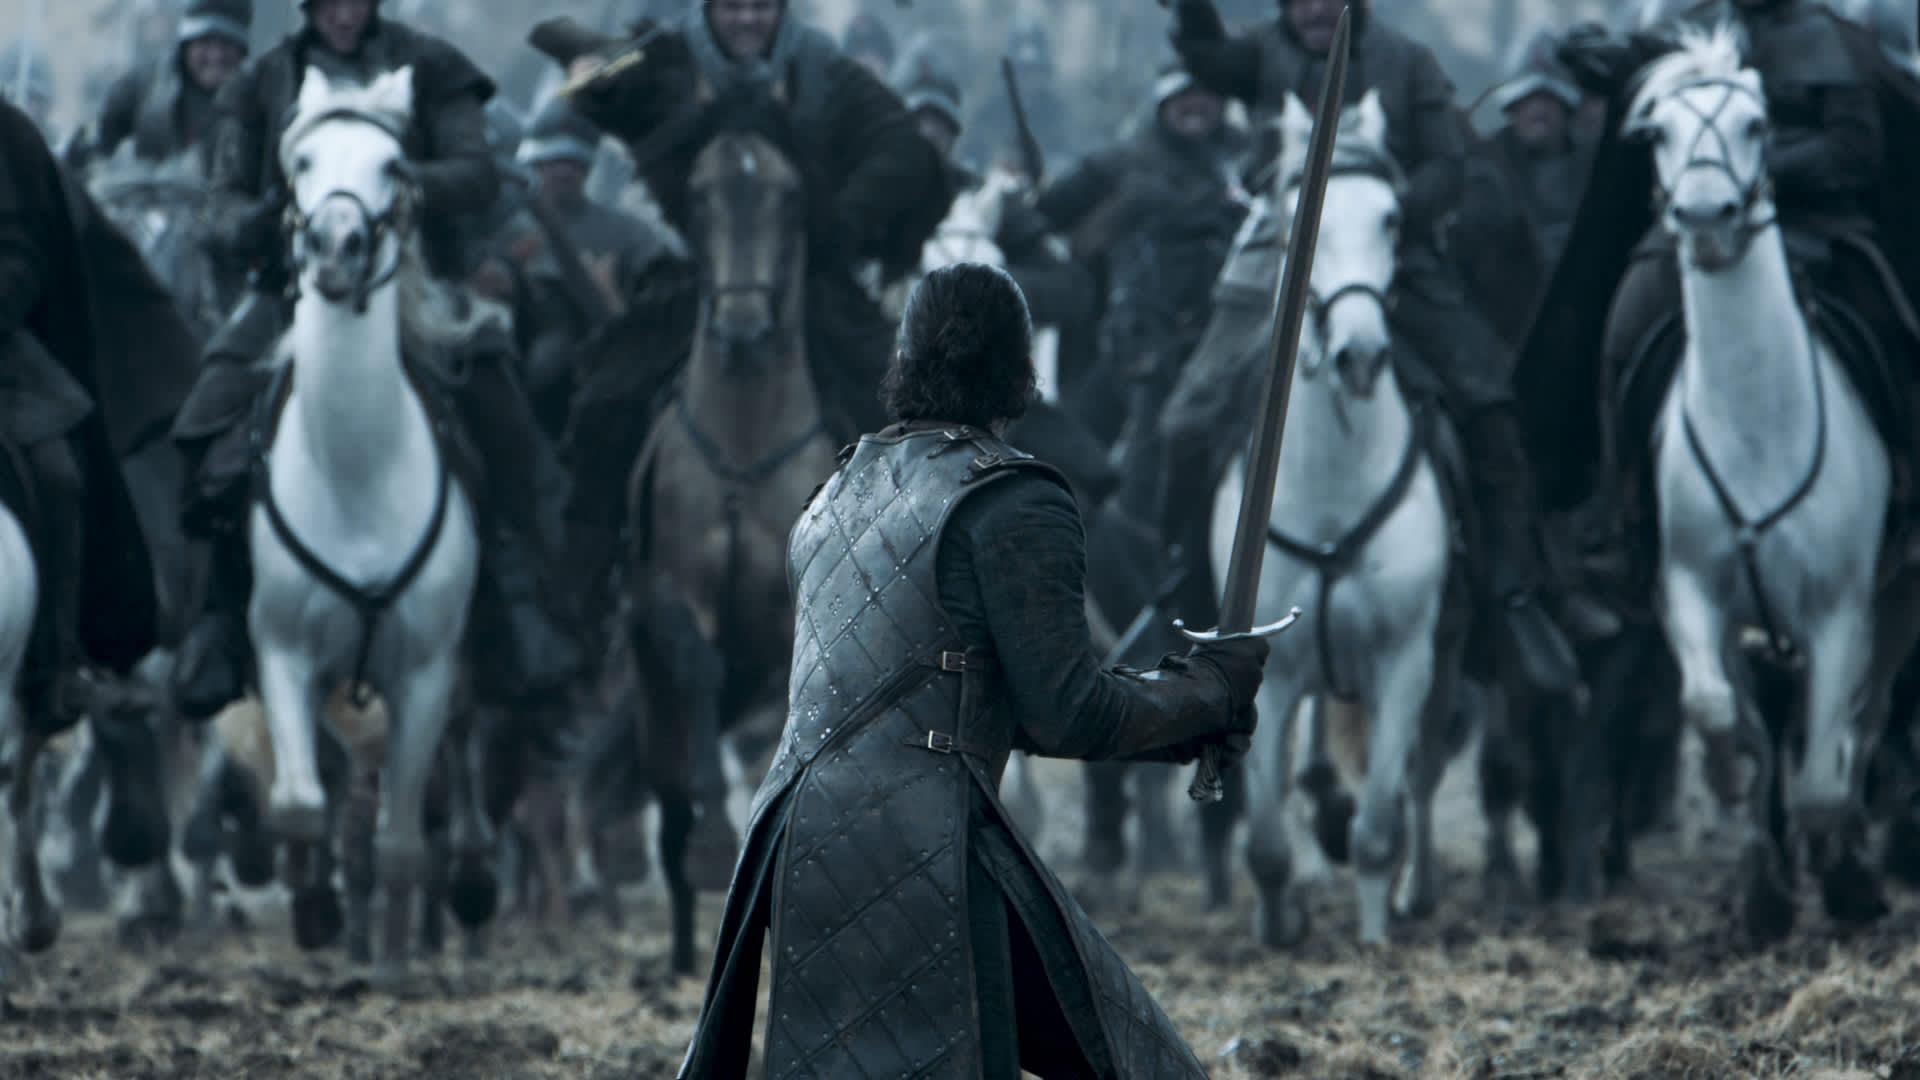 Kit Harington as Jon Snow featured in the Game of Thrones season 6, episode 9